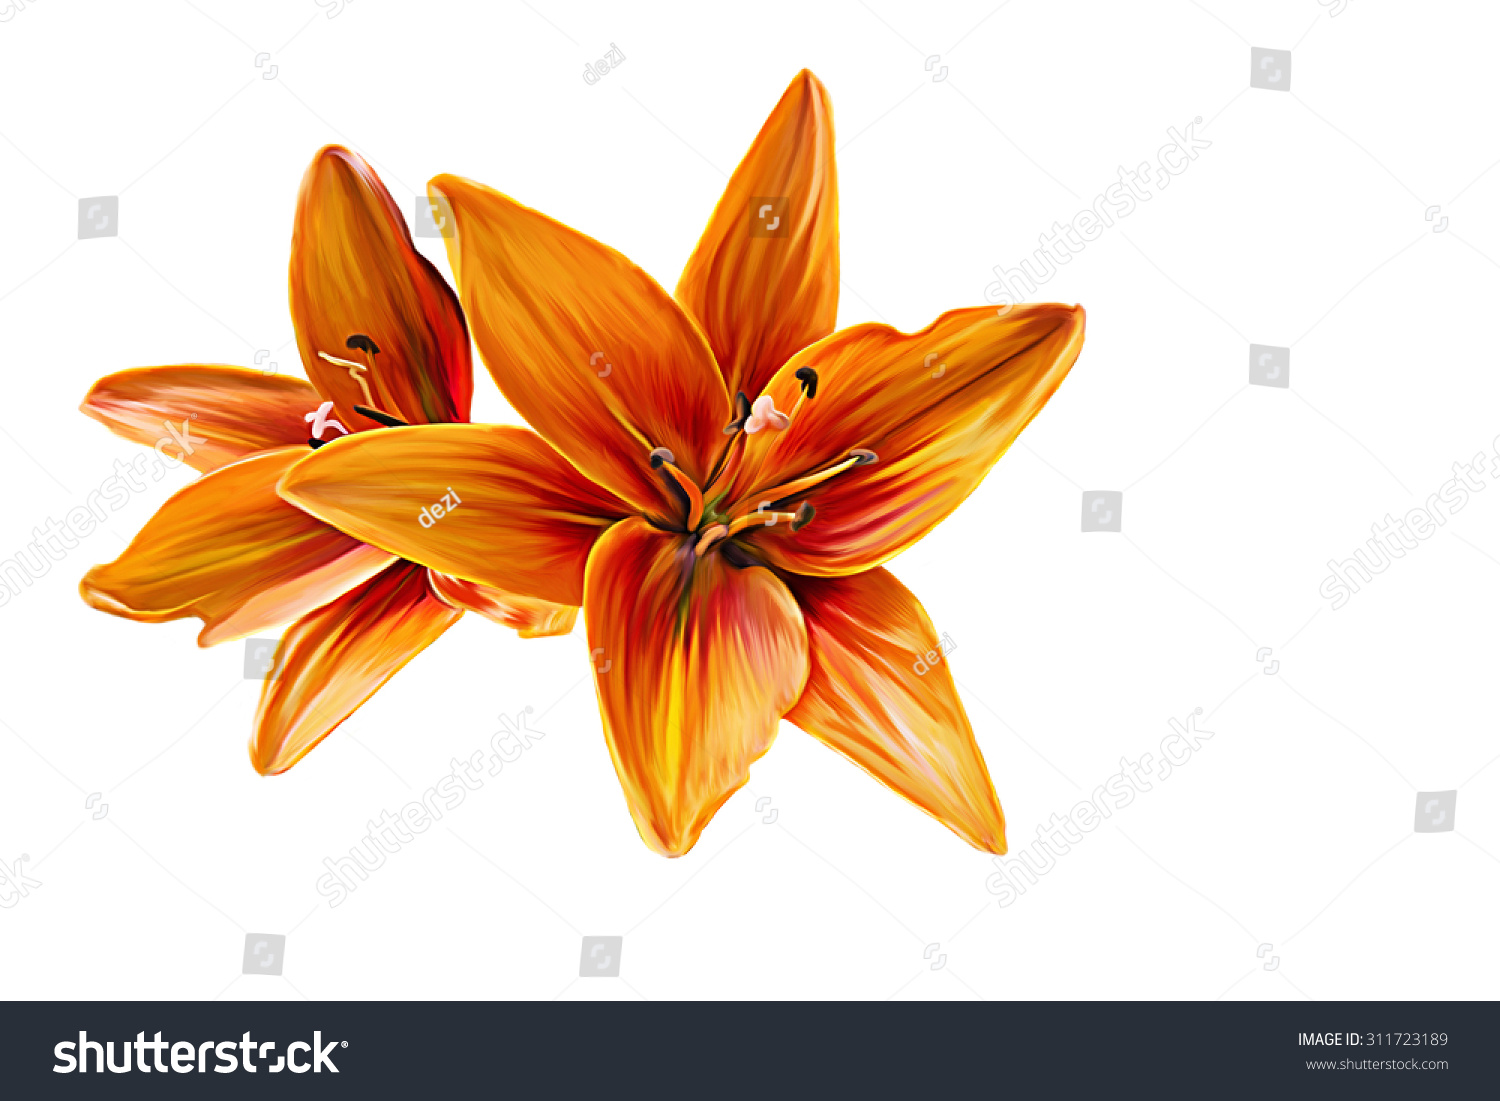 Drawing lily flower oil painting on stock illustration 311723189 drawing lily flower oil painting on a white background izmirmasajfo